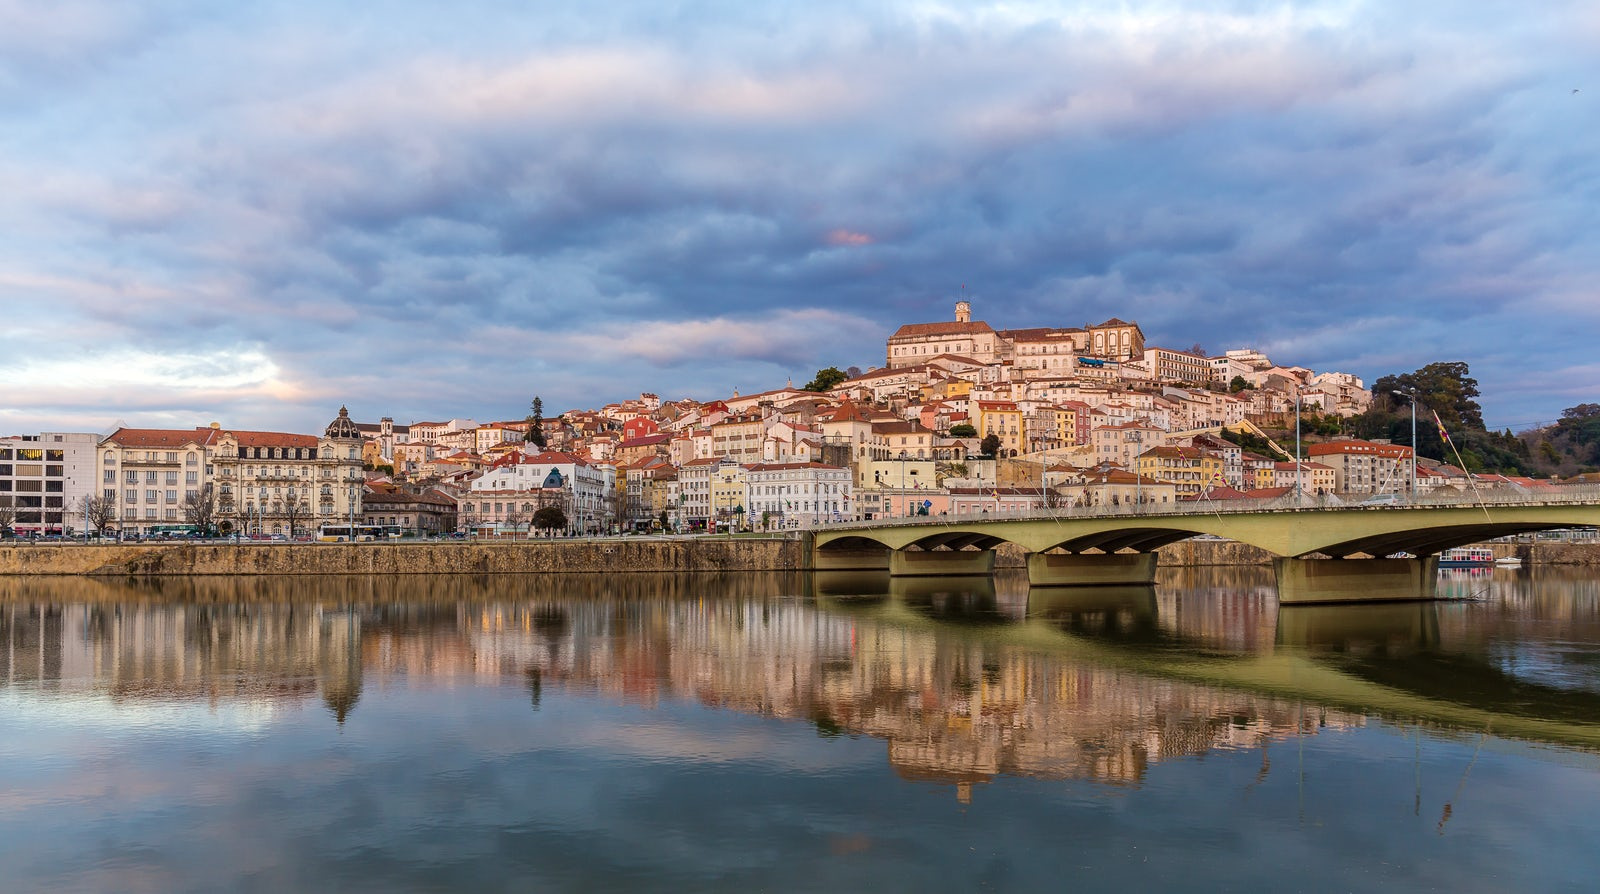 !i18n:en:data.cities:coimbra.picture.caption